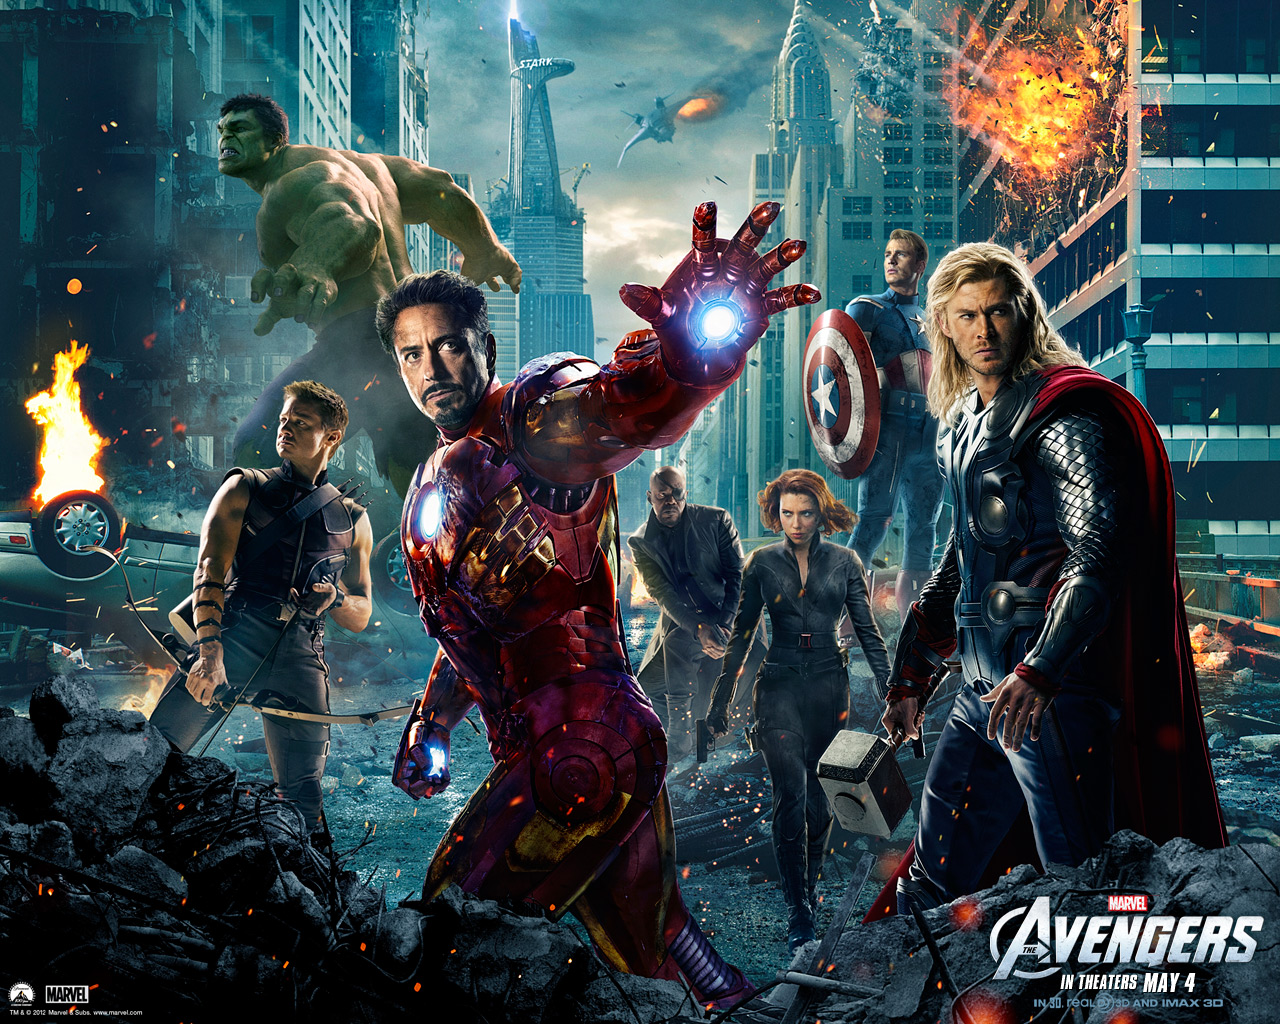 Avengers movie teaser poster/wallpaper download